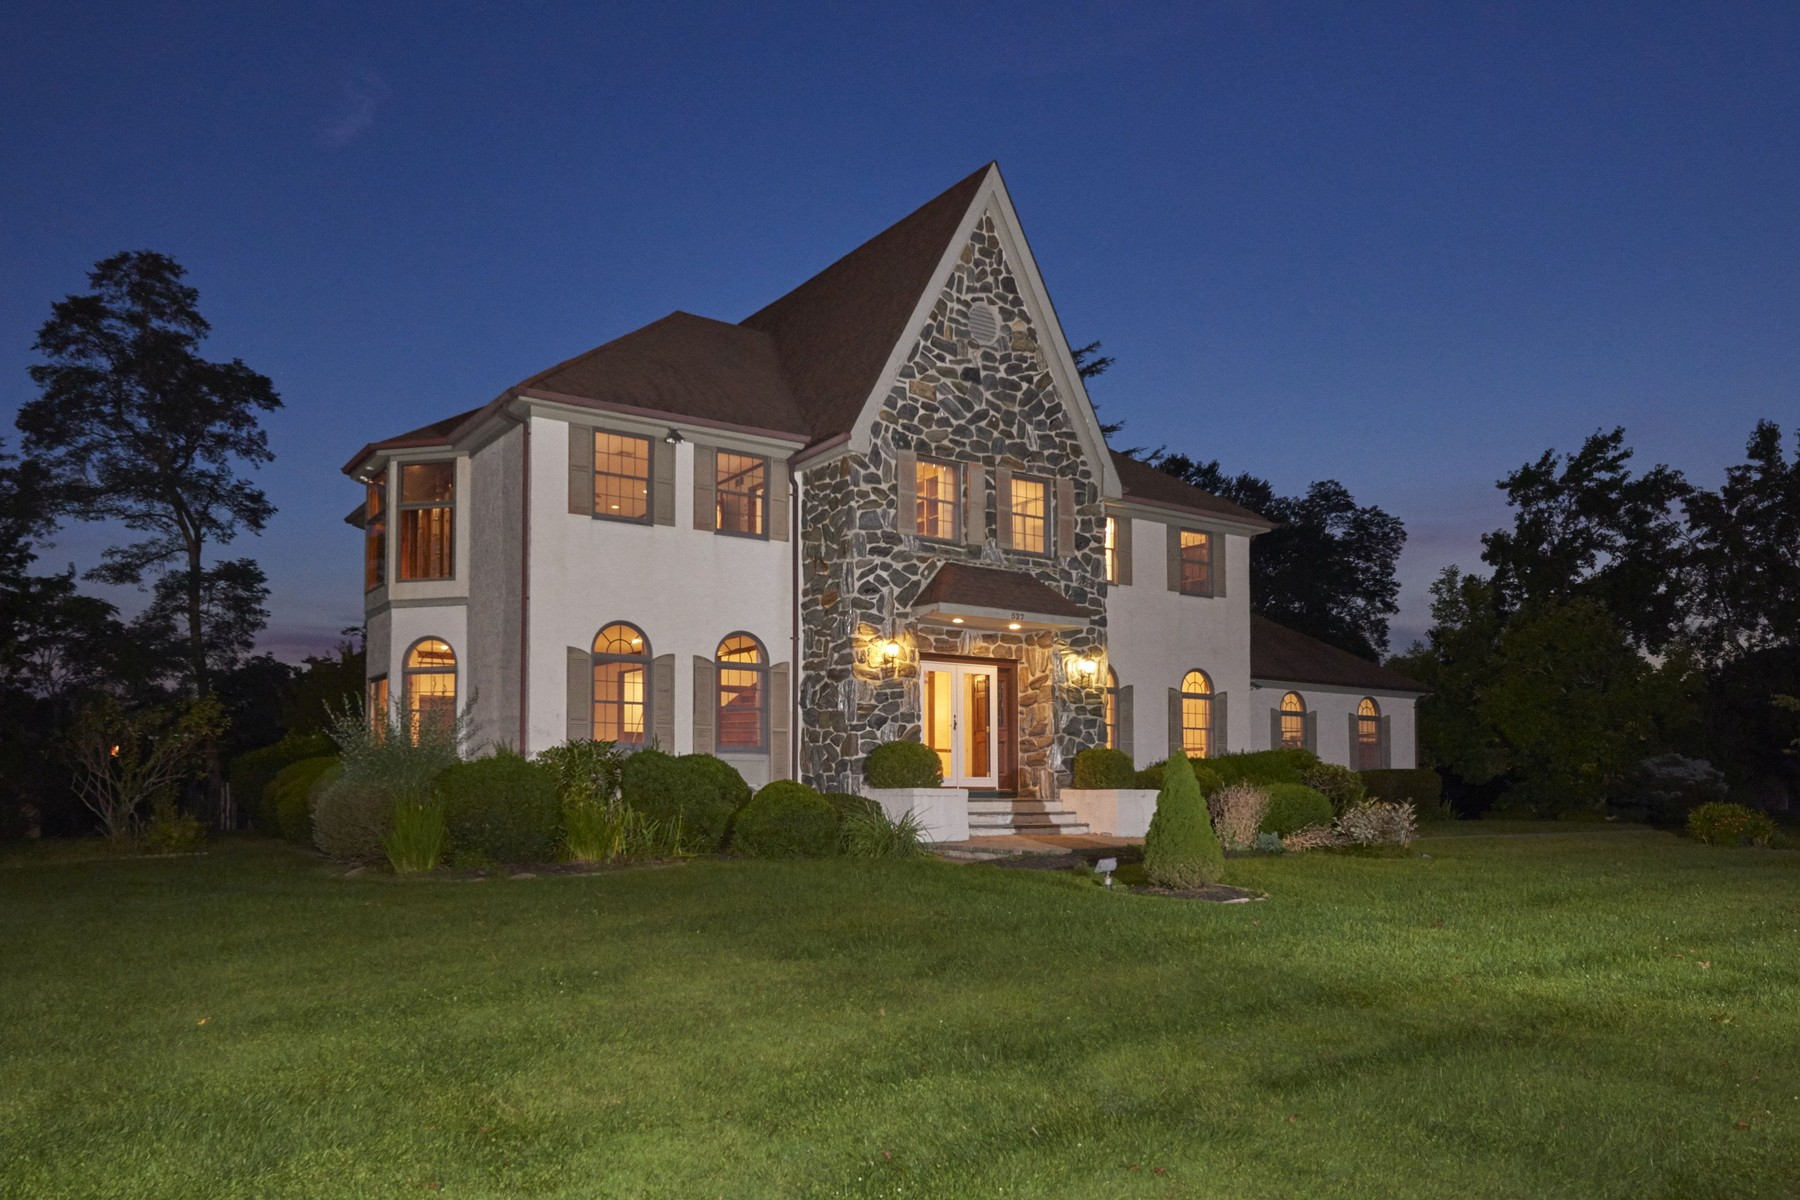 Single Family Homes for Sale at LIVE INSPIRED 527 Seven Bridges Rd Little Silver, New Jersey 07739 United States